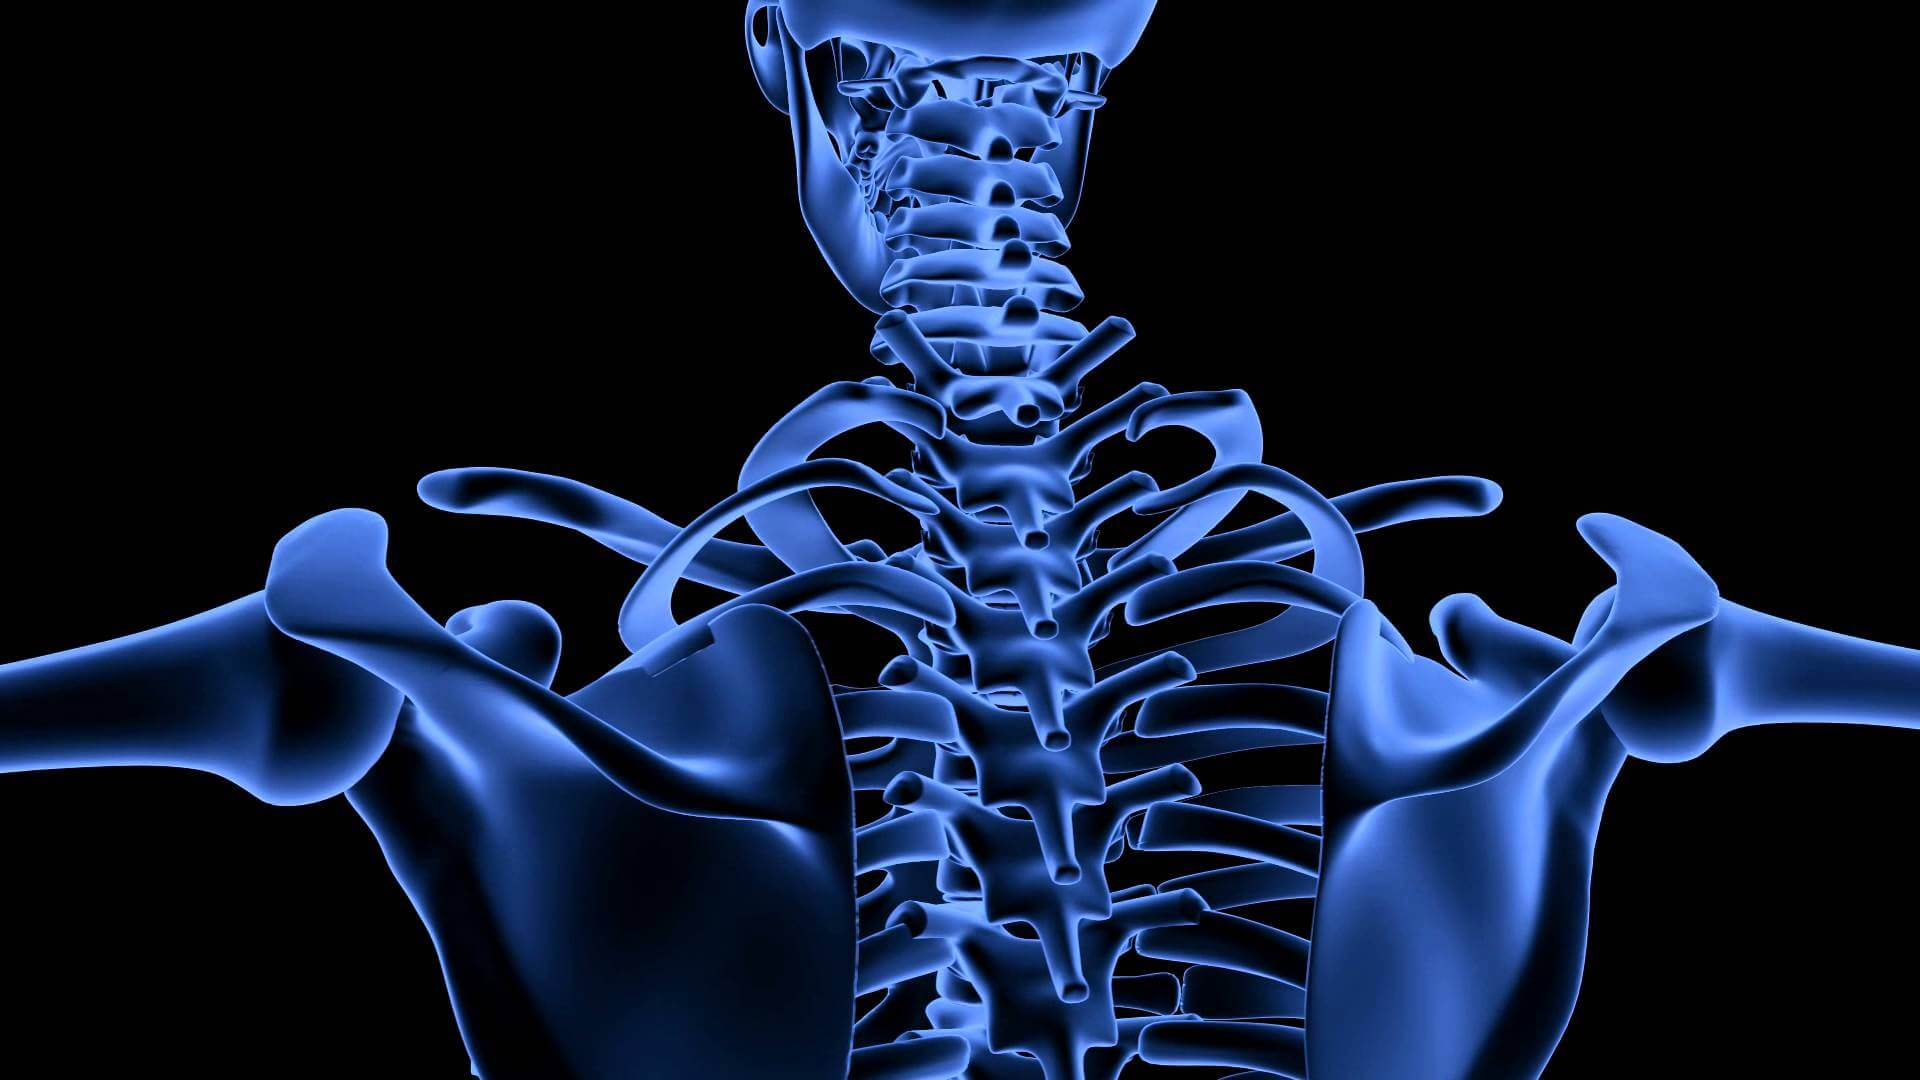 Why Bone Health Could Be Compromised In People With Kidney Disease